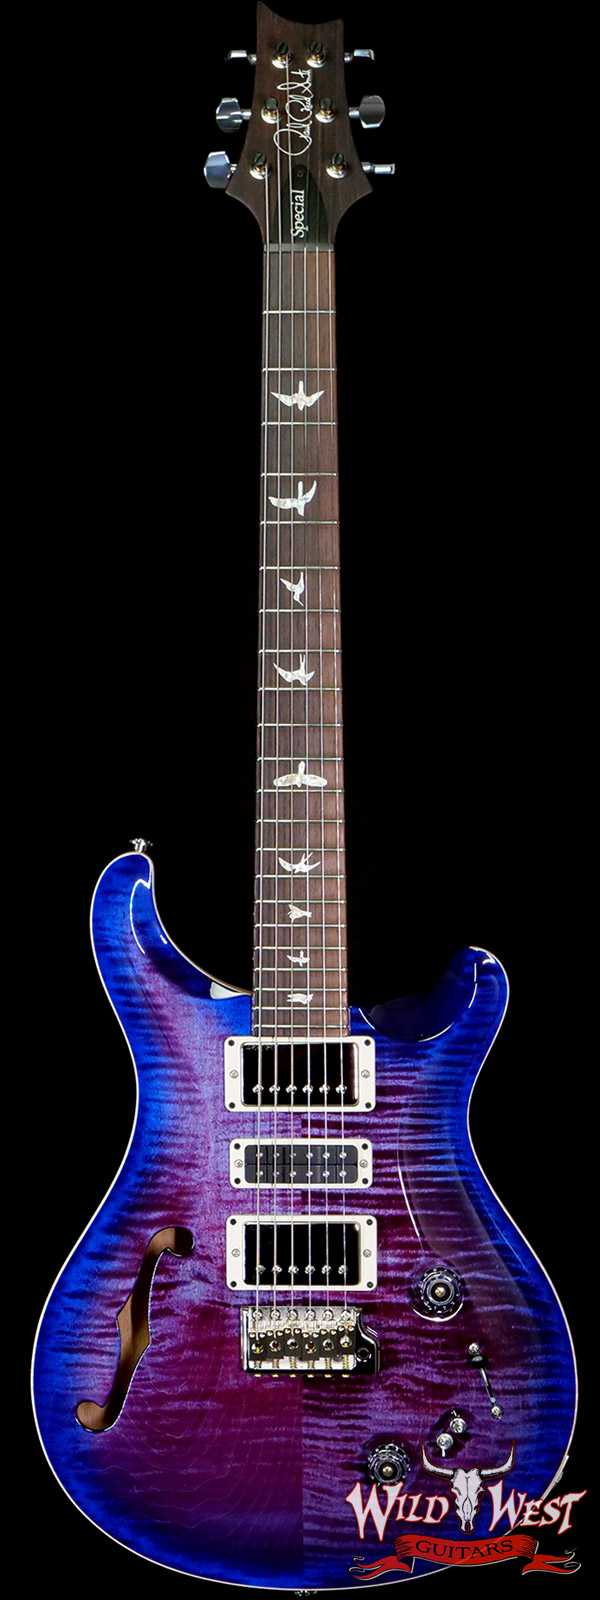 Paul Reed Smith PRS Limited Edition Special 22 Semi-Hollow Rosewood Fingerboard Violet Blue Burst